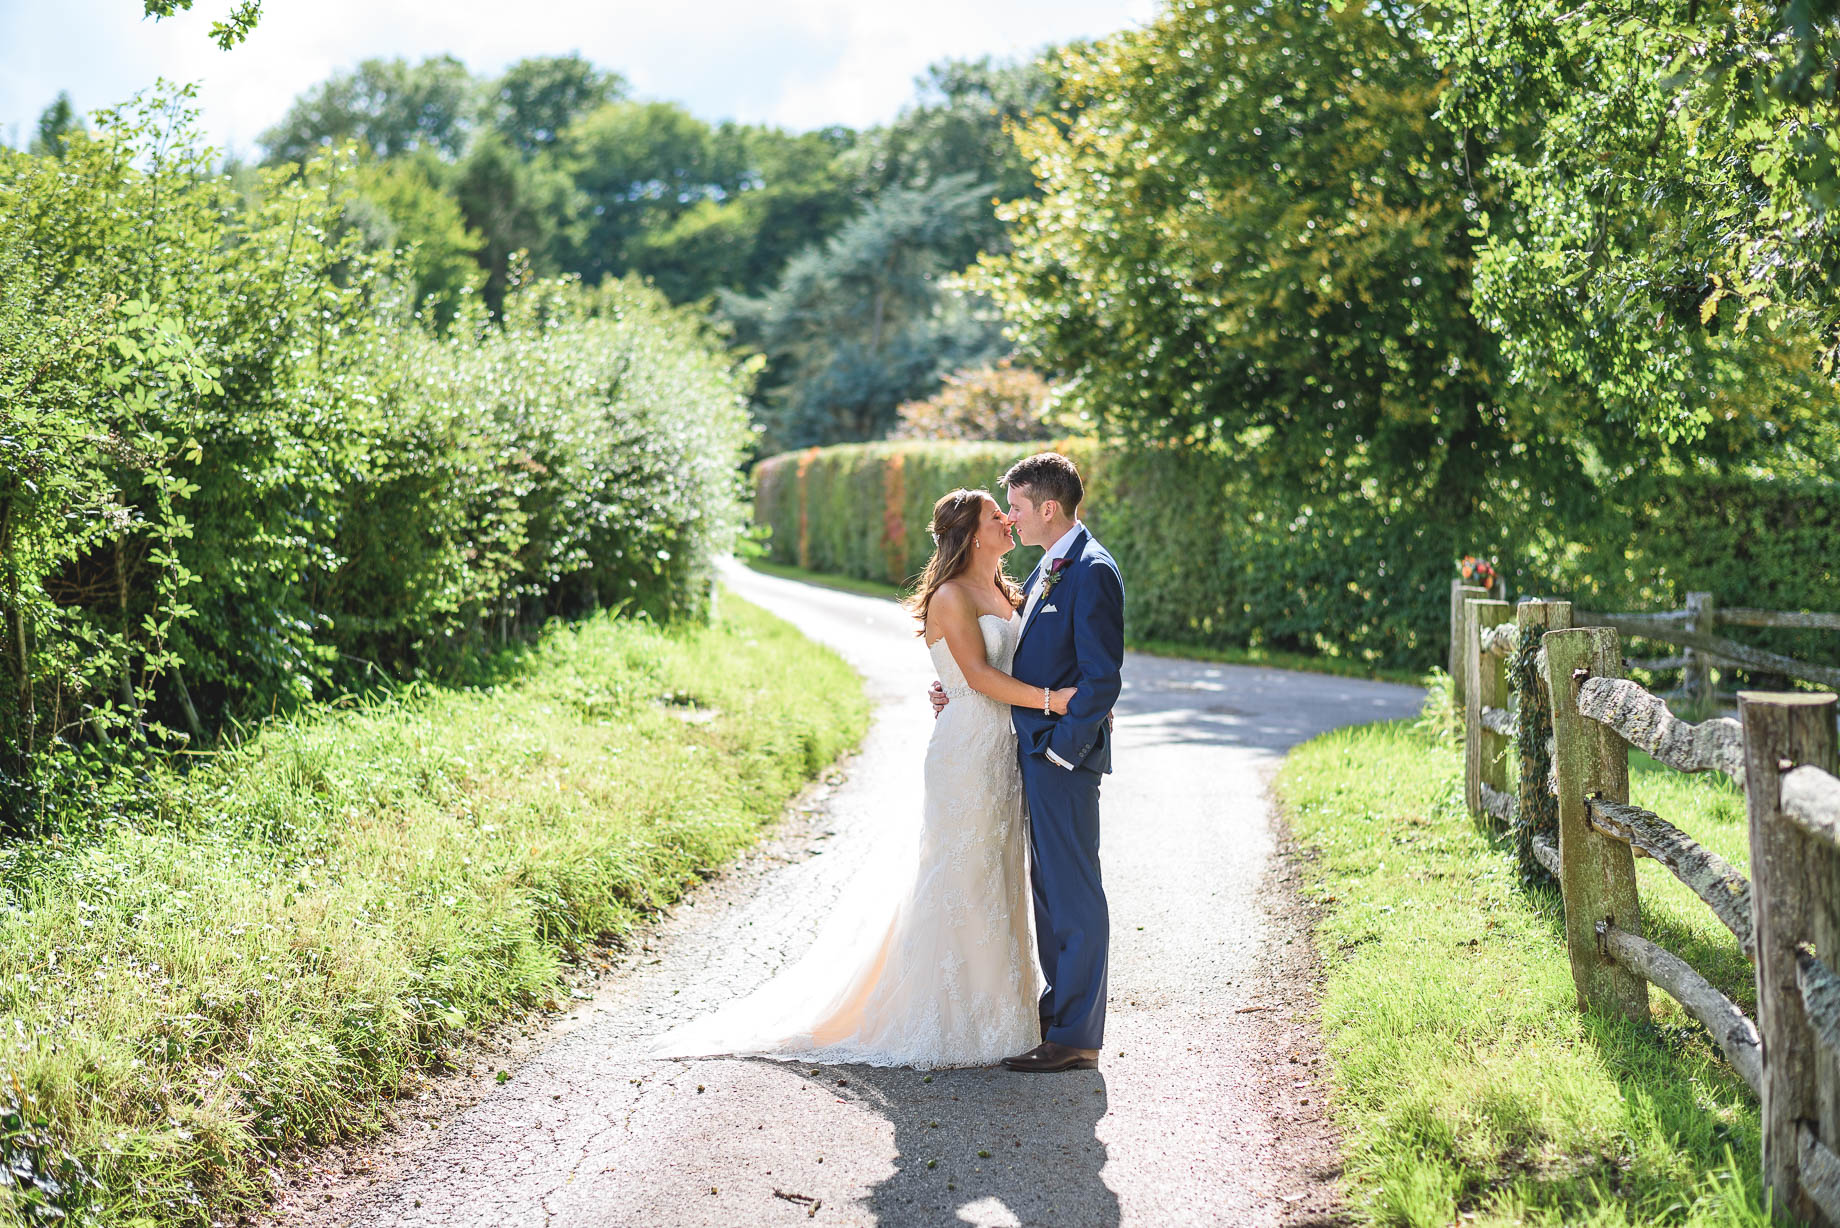 Gate Street Barn wedding photography - Guy Collier - Claire and Andy (79 of 192)